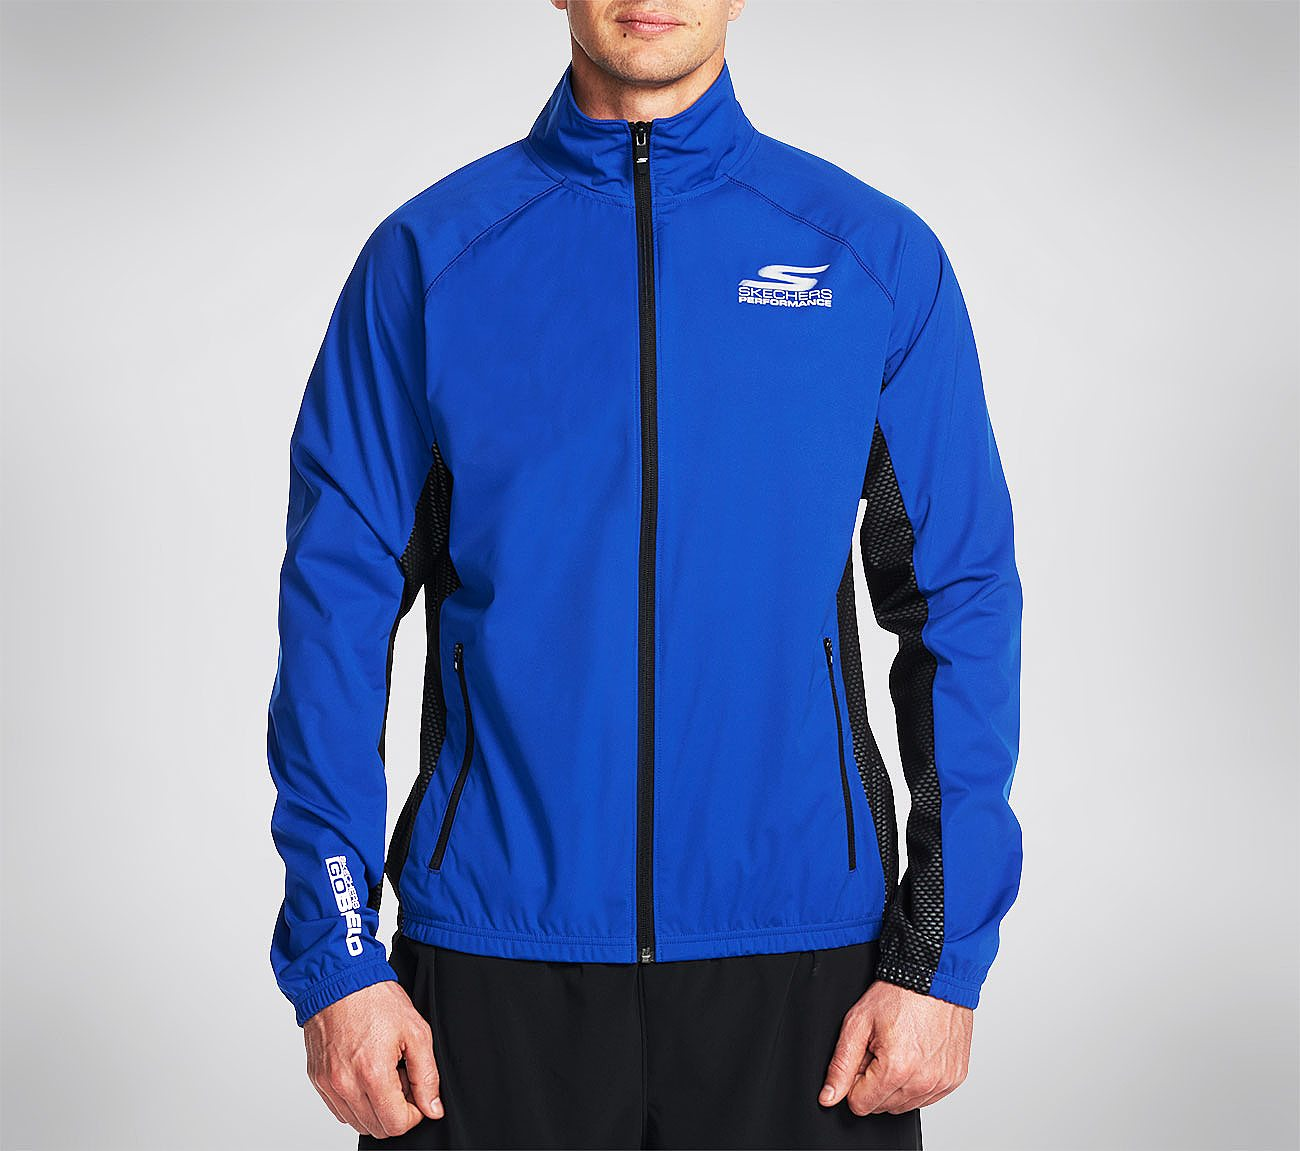 Skechers GO Shield BWW-DX225 Jacket